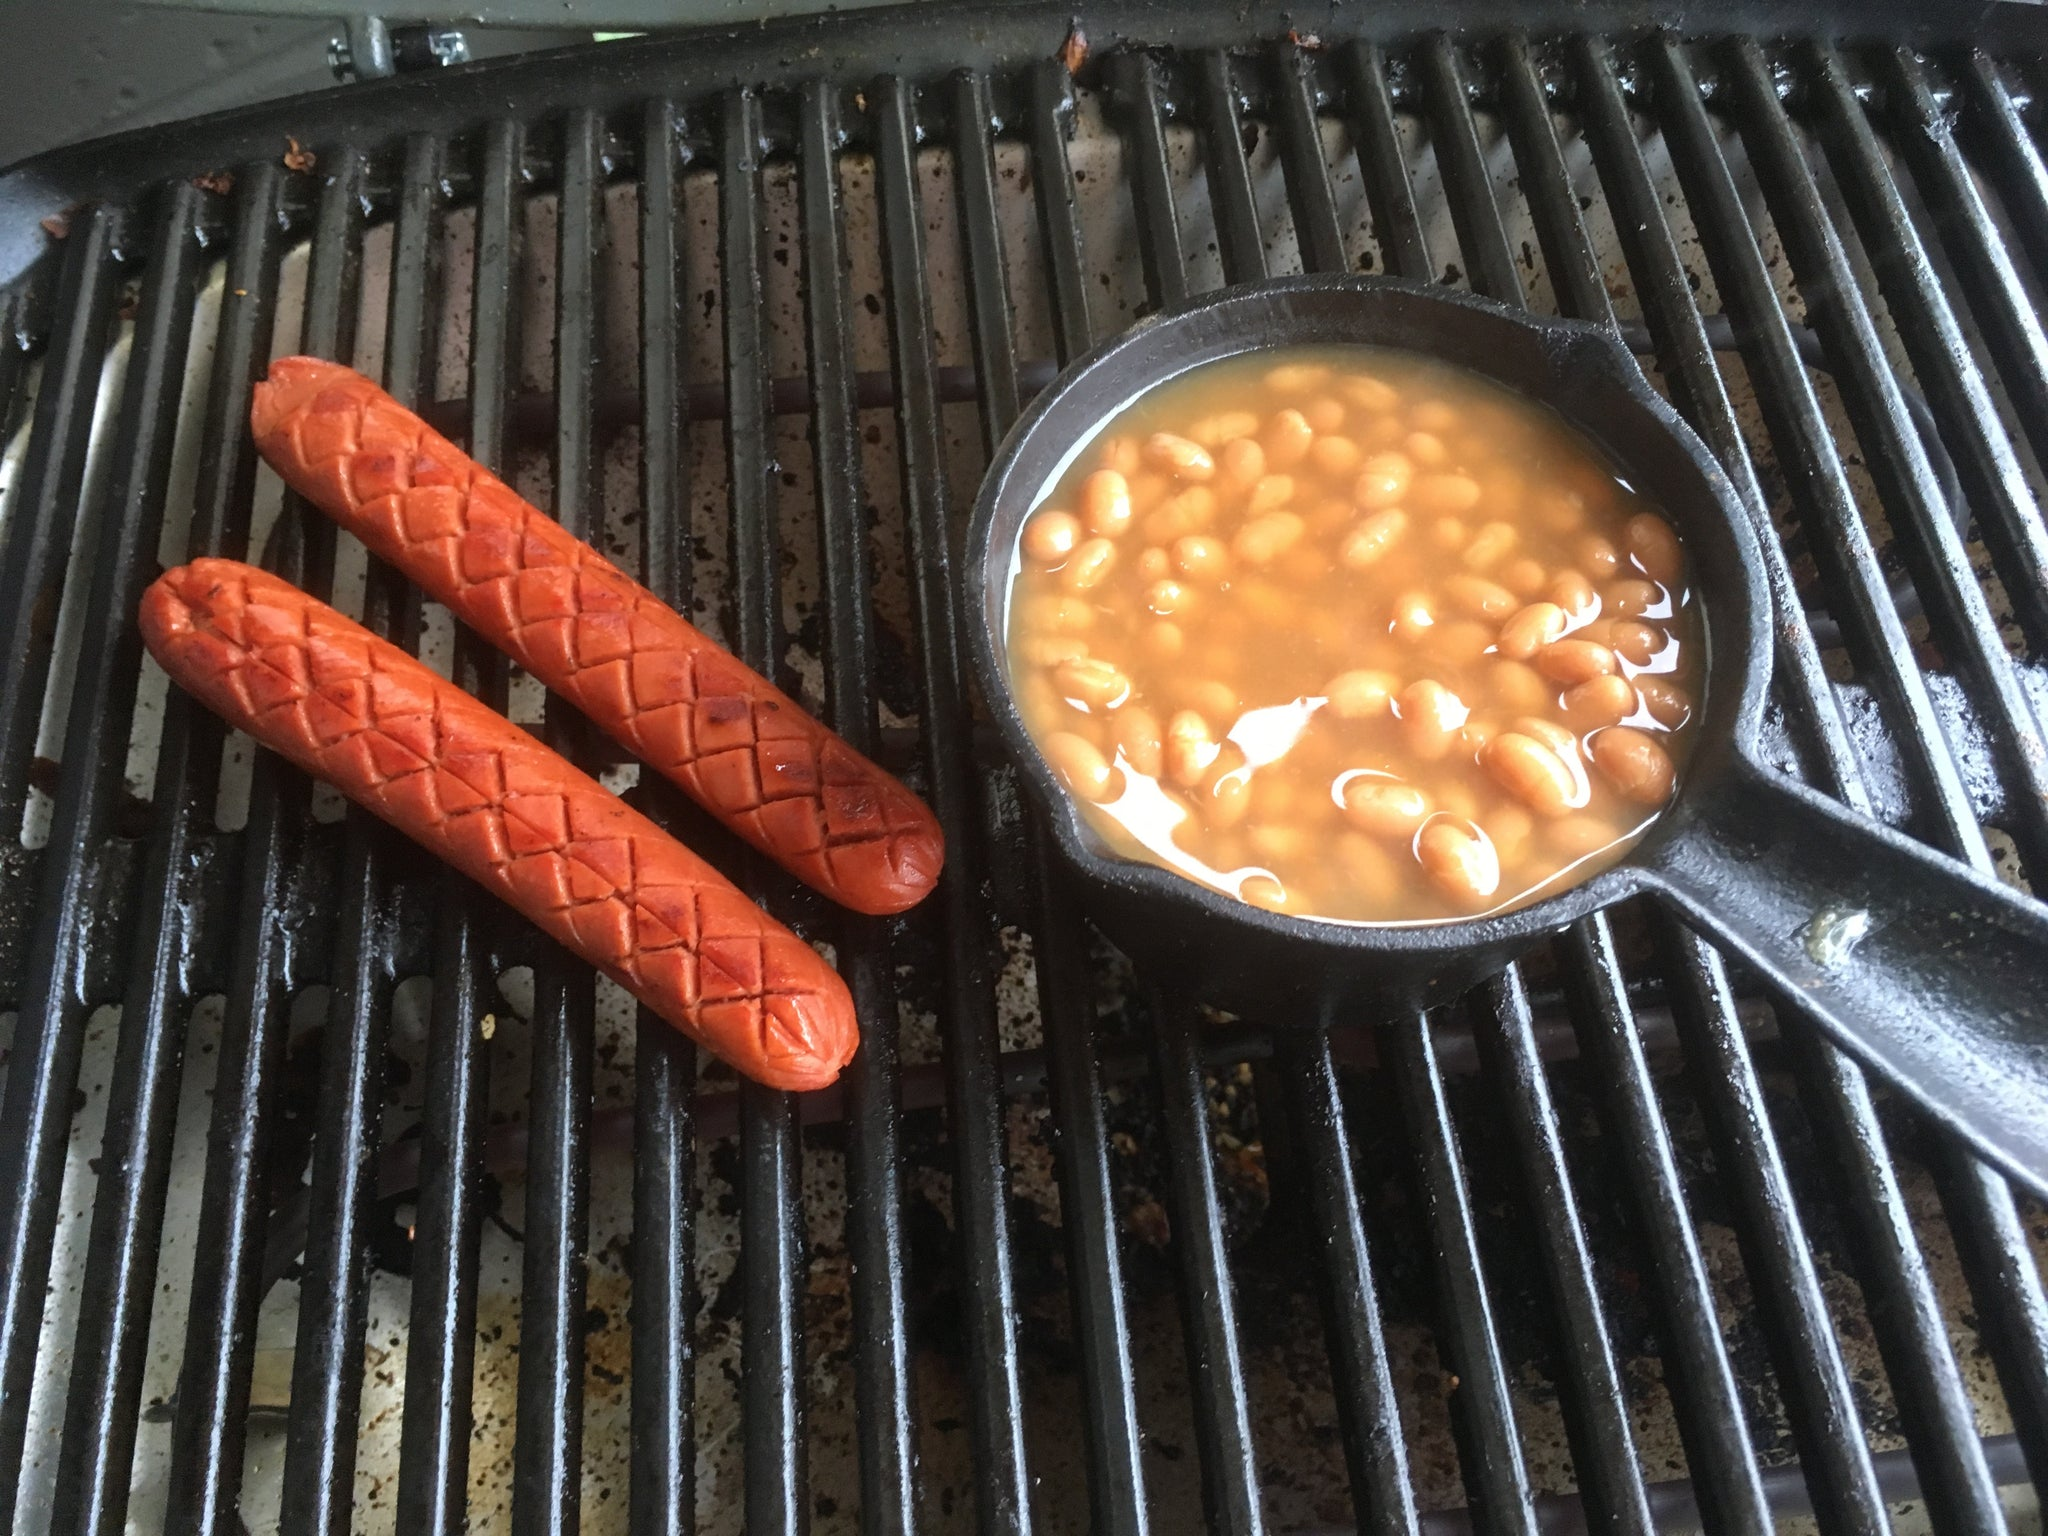 Hotdogs and baked beans on the barbecue